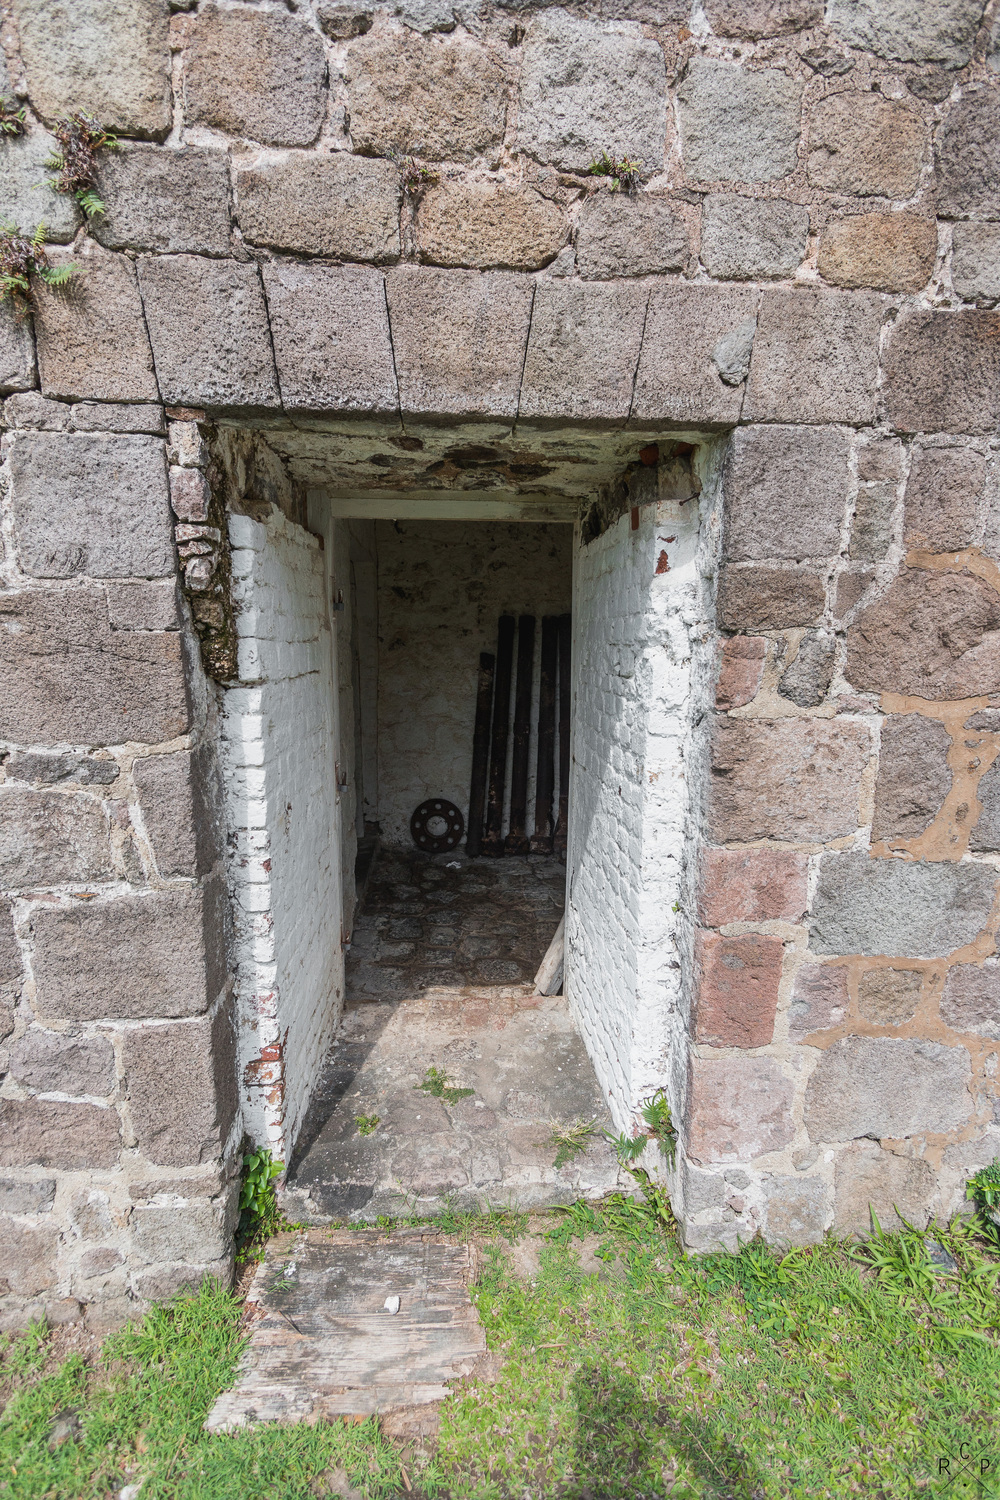 Munitions Store Entrance - Fort Shirley, Portsmouth, Dominica 17/04/2016